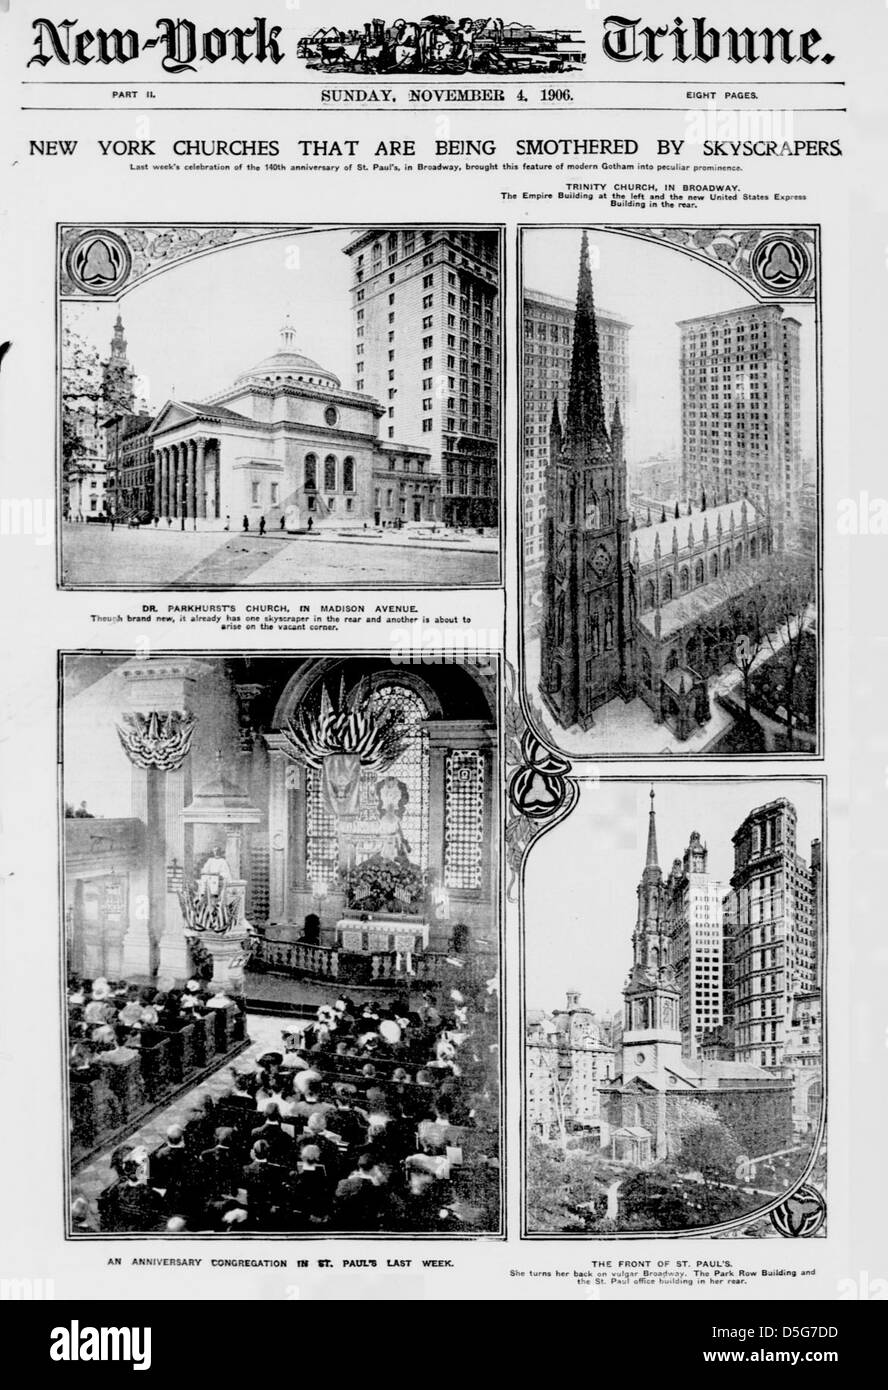 New York churches that are being smothered by skyscrapers (LOC) - Stock Image